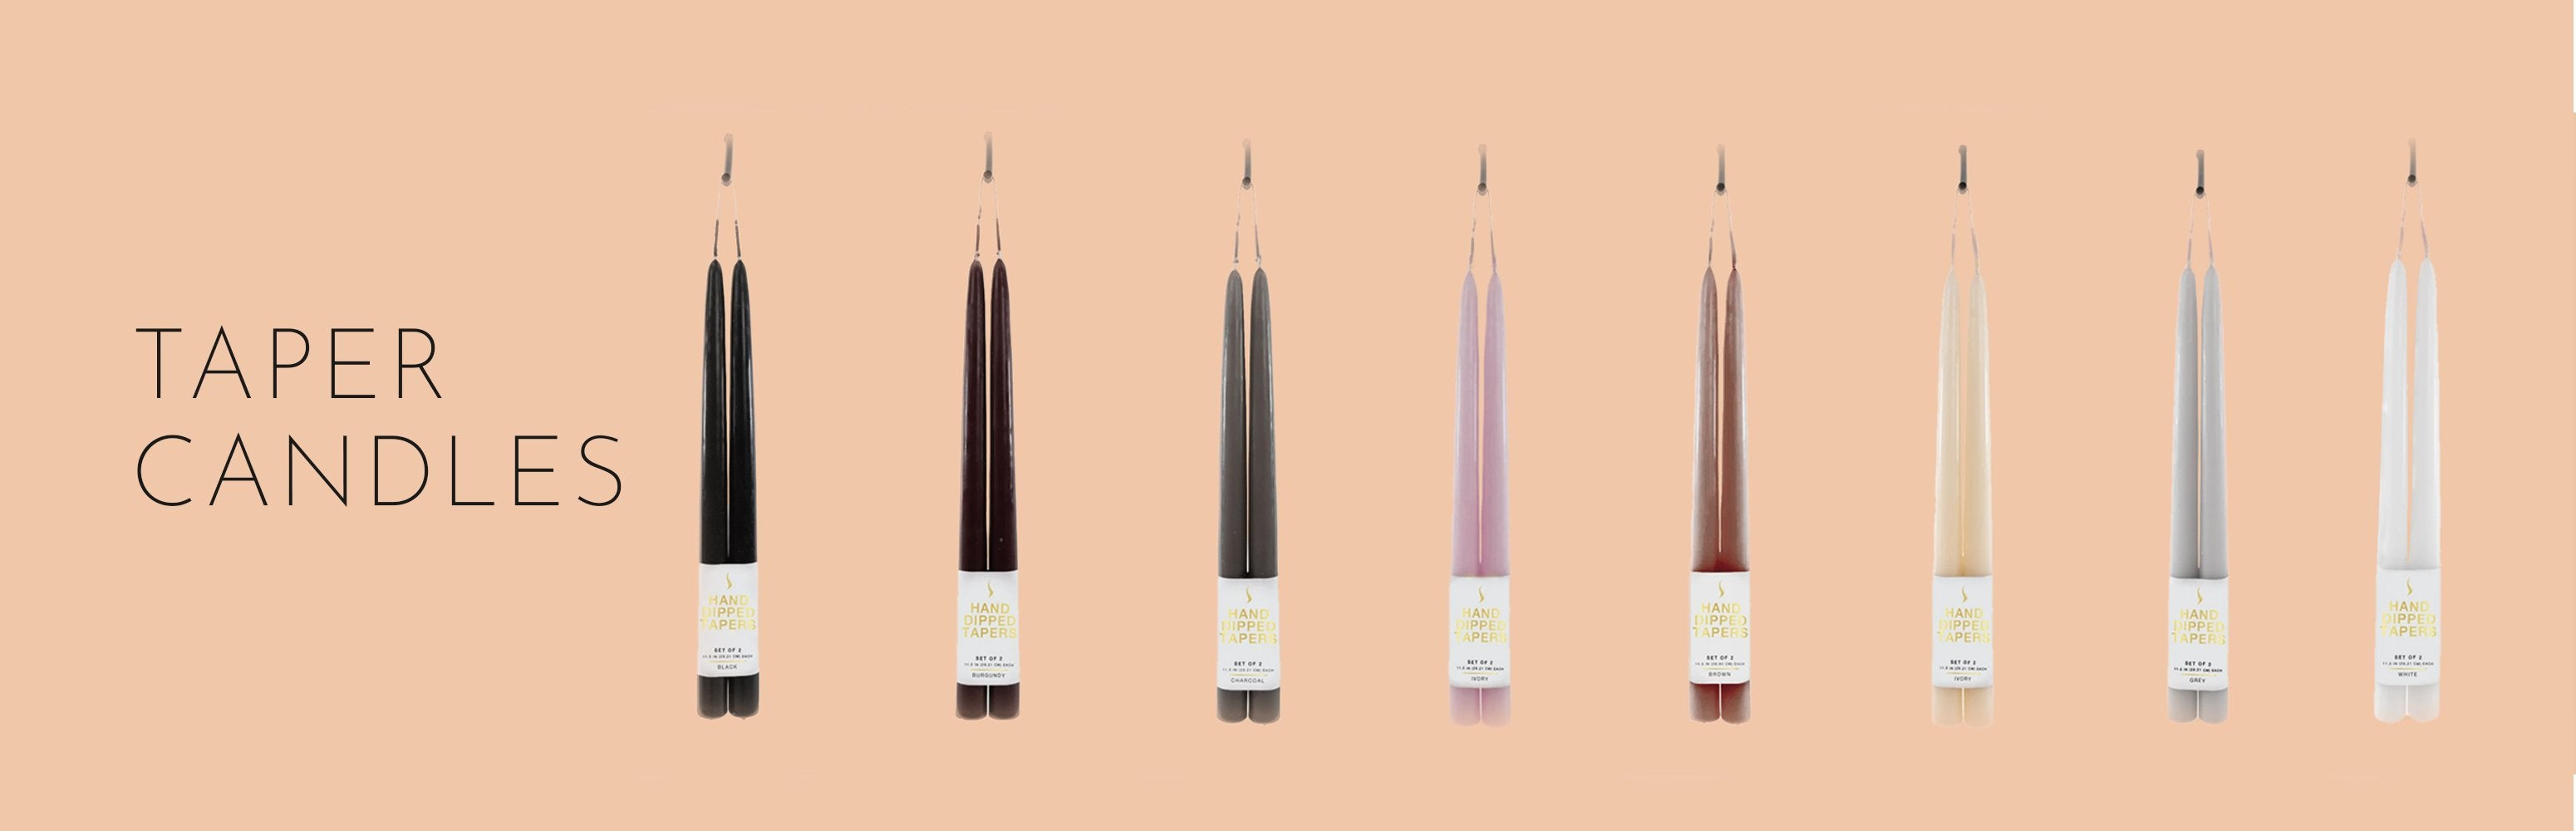 Stone Candles Tapers Collection Banner